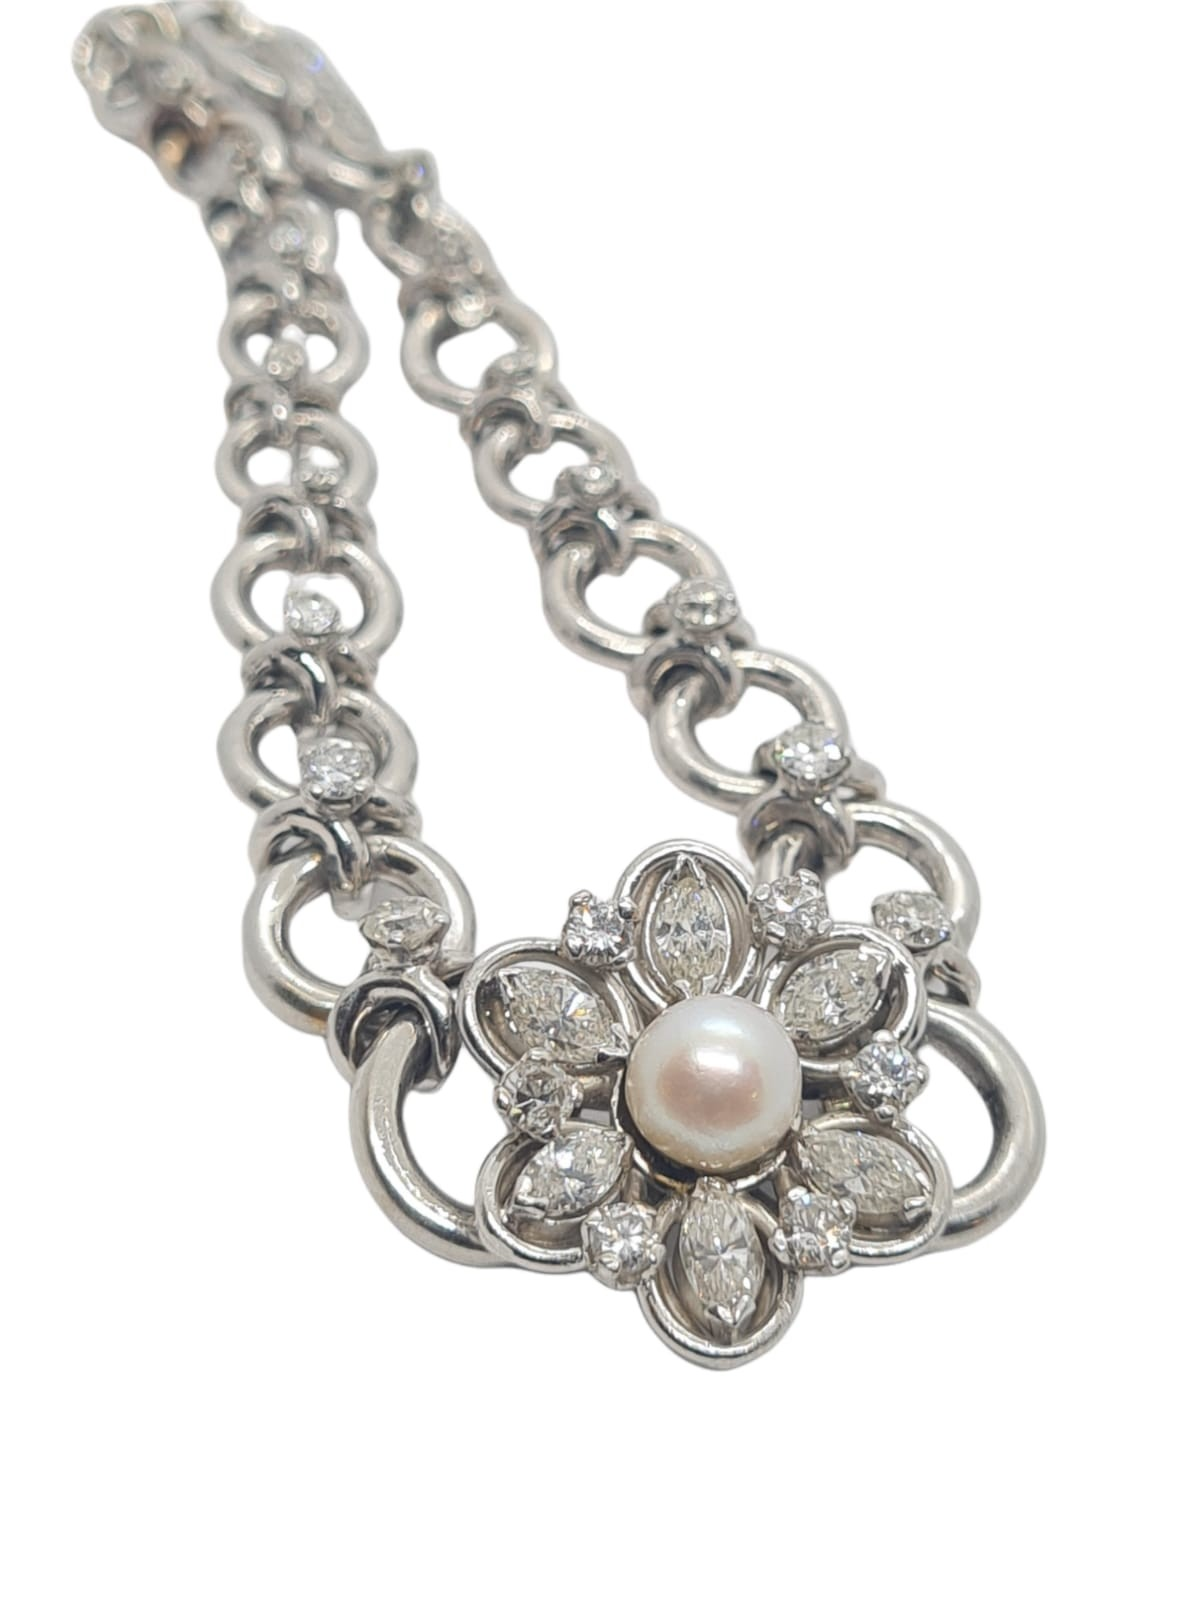 18k white gold French antique diamond and pearl set bracelet, flower design, weight 18.5g approx 2ct - Image 5 of 5